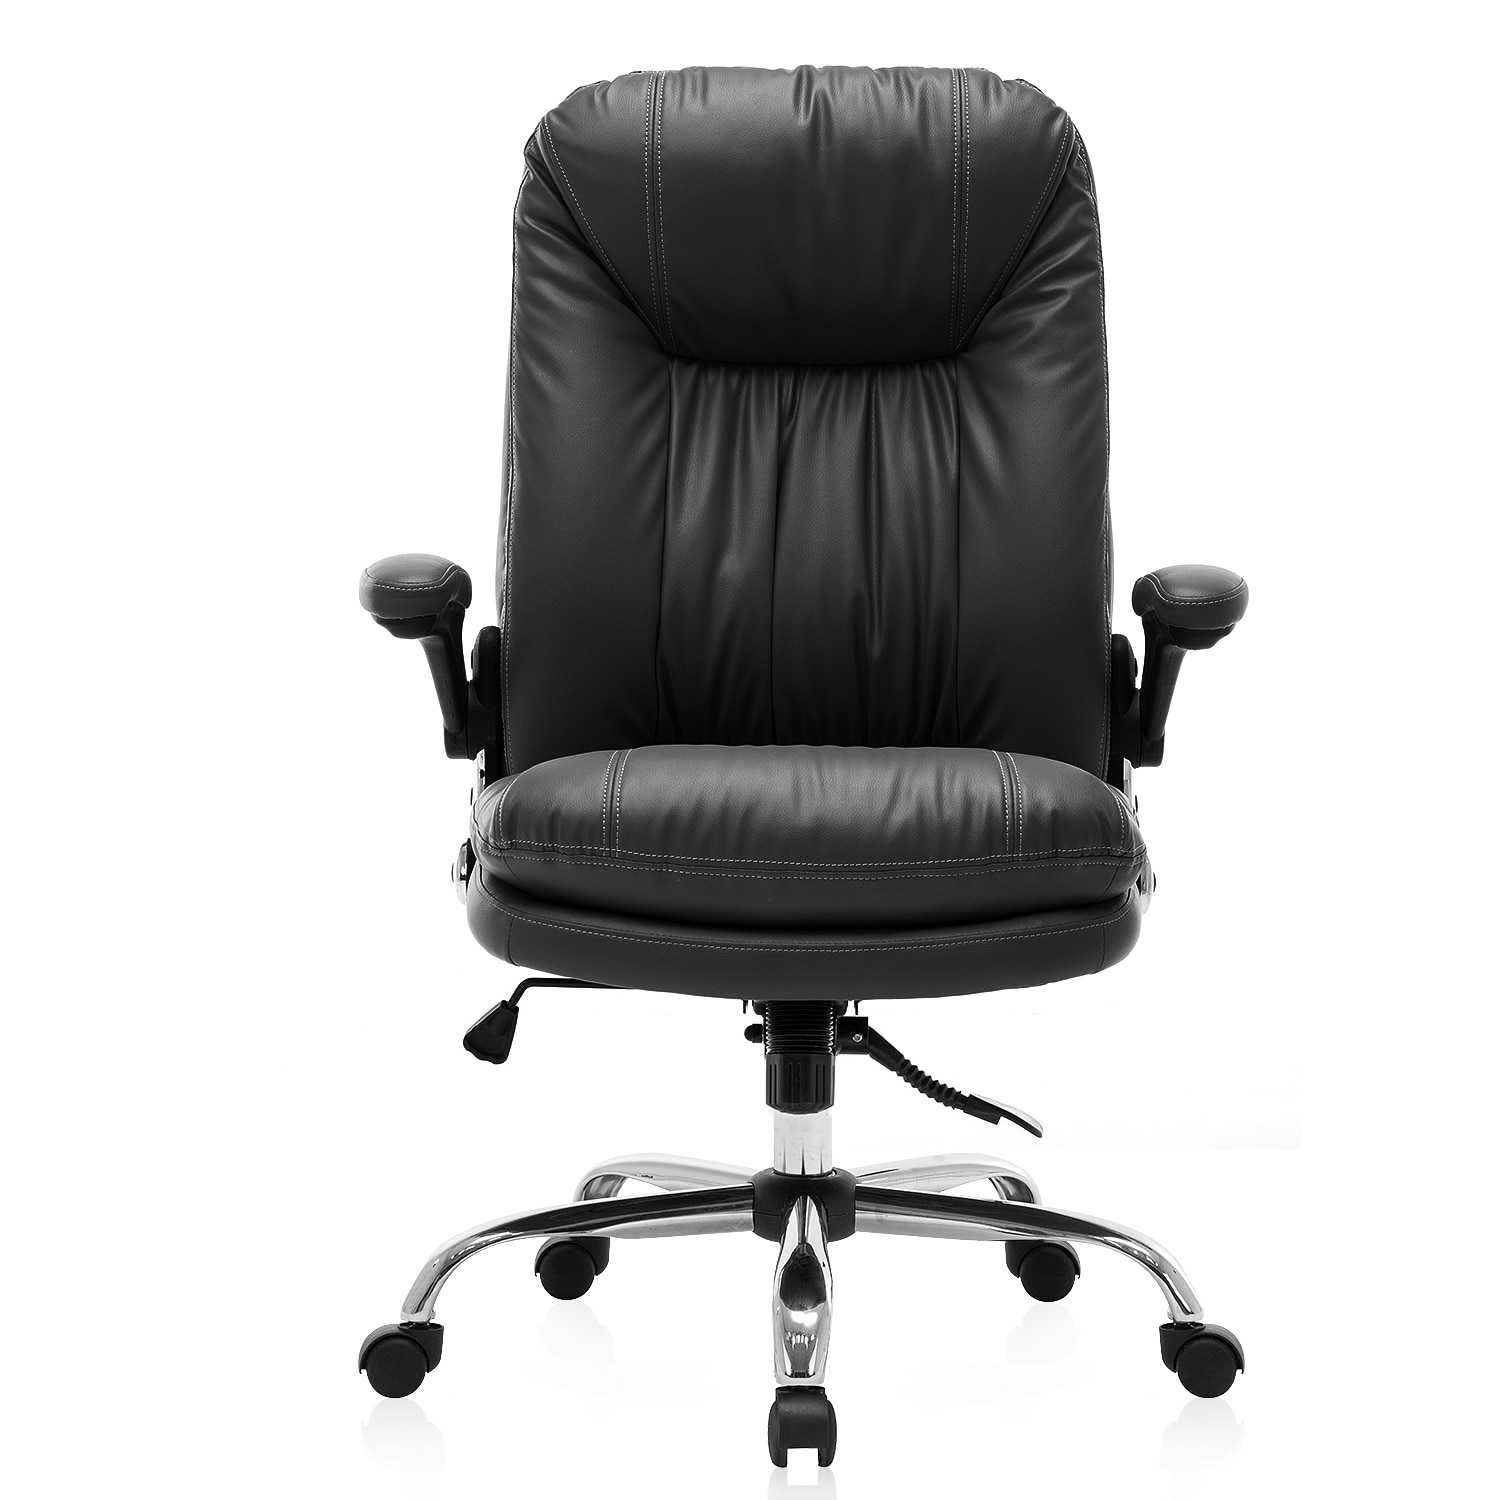 Hc6e5599c6bff4e0080bf61f3ab20a2add - Yamasoro Ergonomic Office chair Faux PU Leather Chair Executive Computer Desk Chairs Managerial Executive Chairs